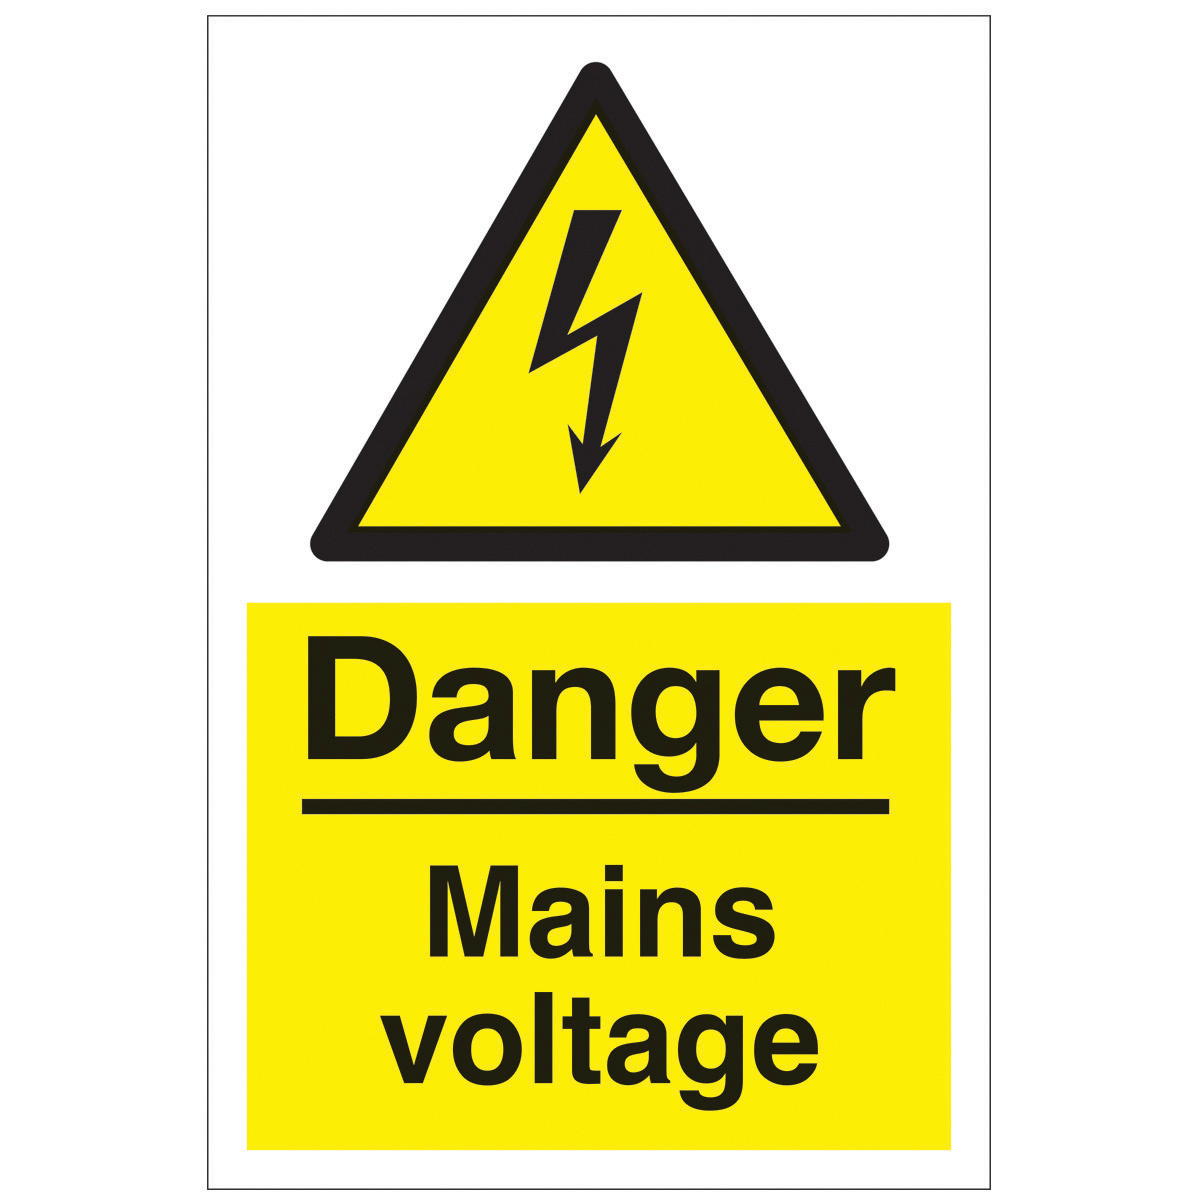 Danger Mains Voltage Safety Sign - Hazard & Warning Sign ...